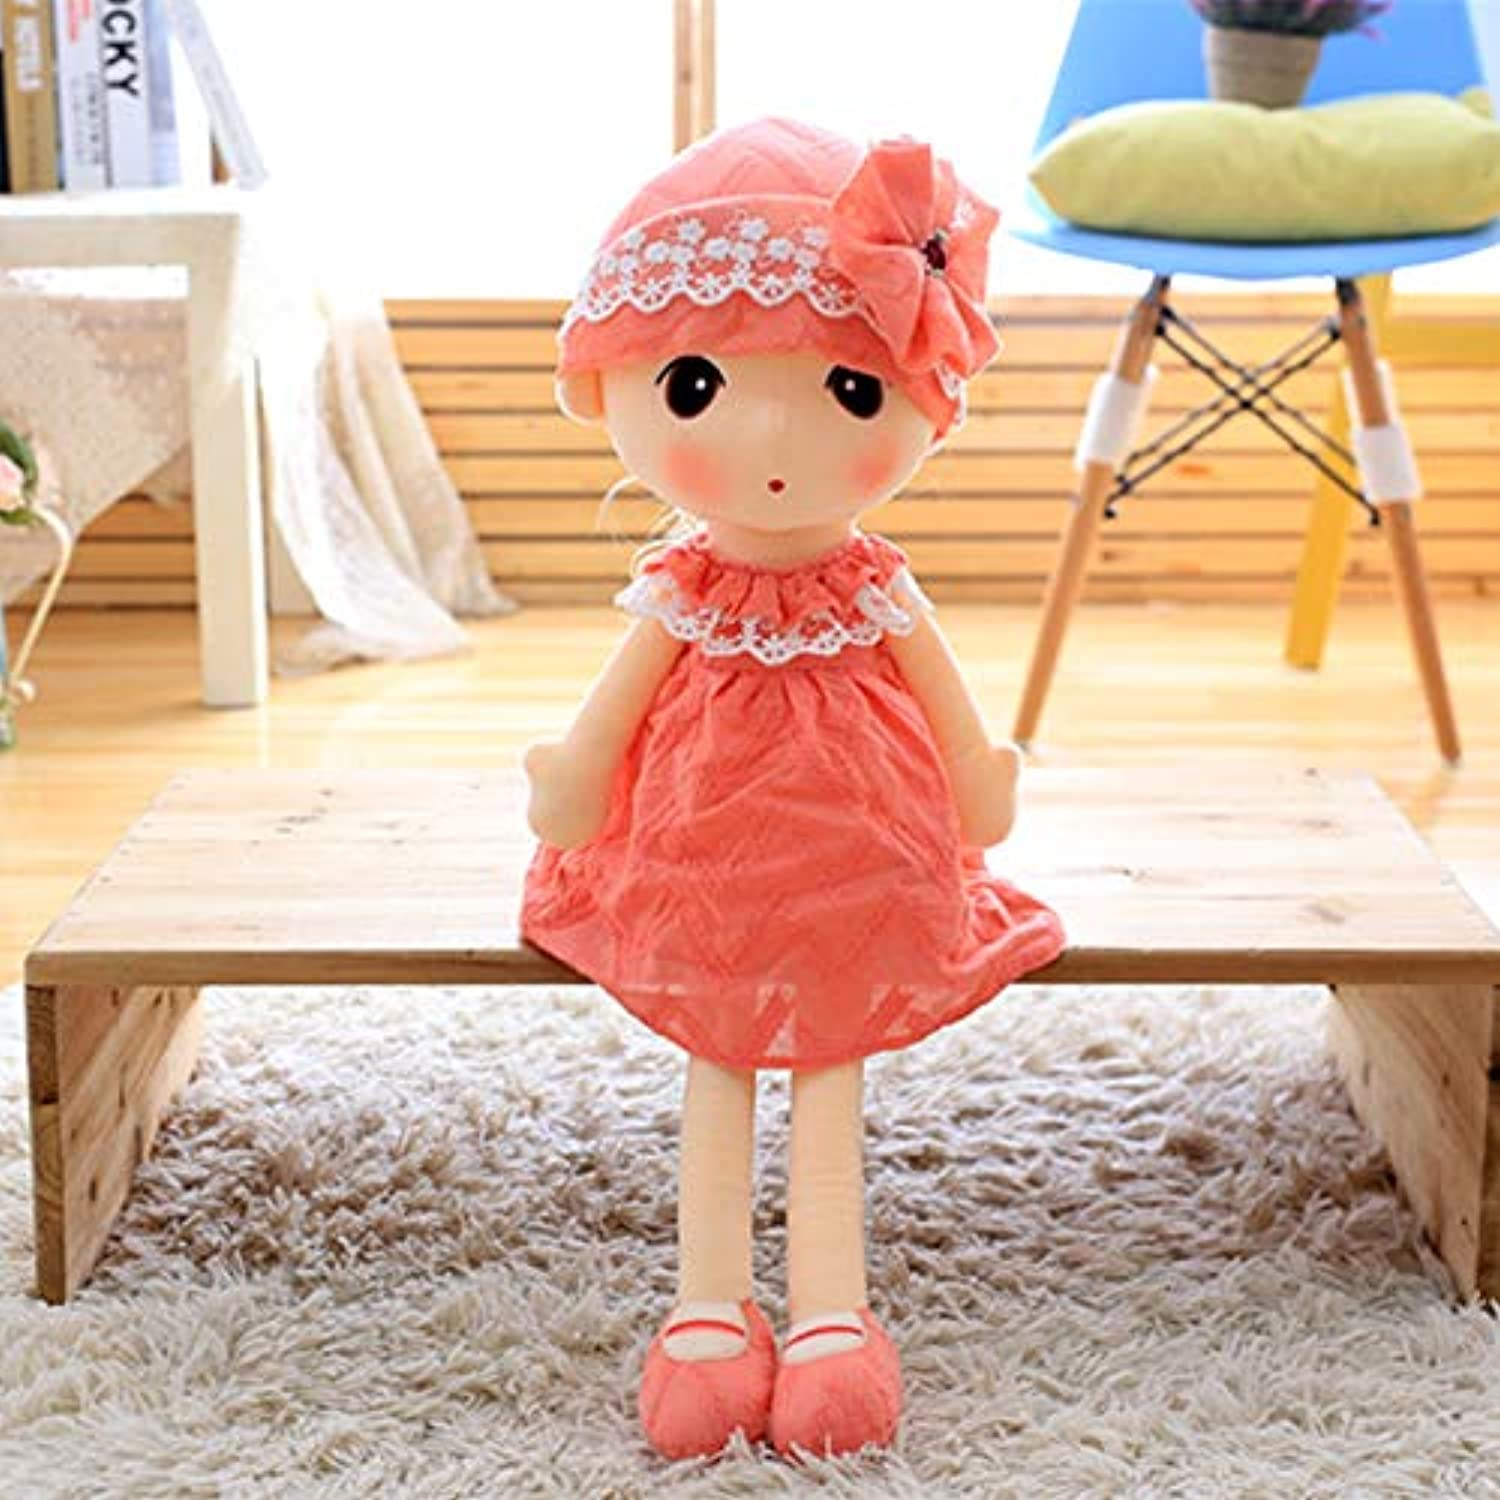 DONGER Toy Cute Doll Birthday Gift Doll Girl Princess Hugs Sleep To Send Girlfriend, Red, 90 Cm